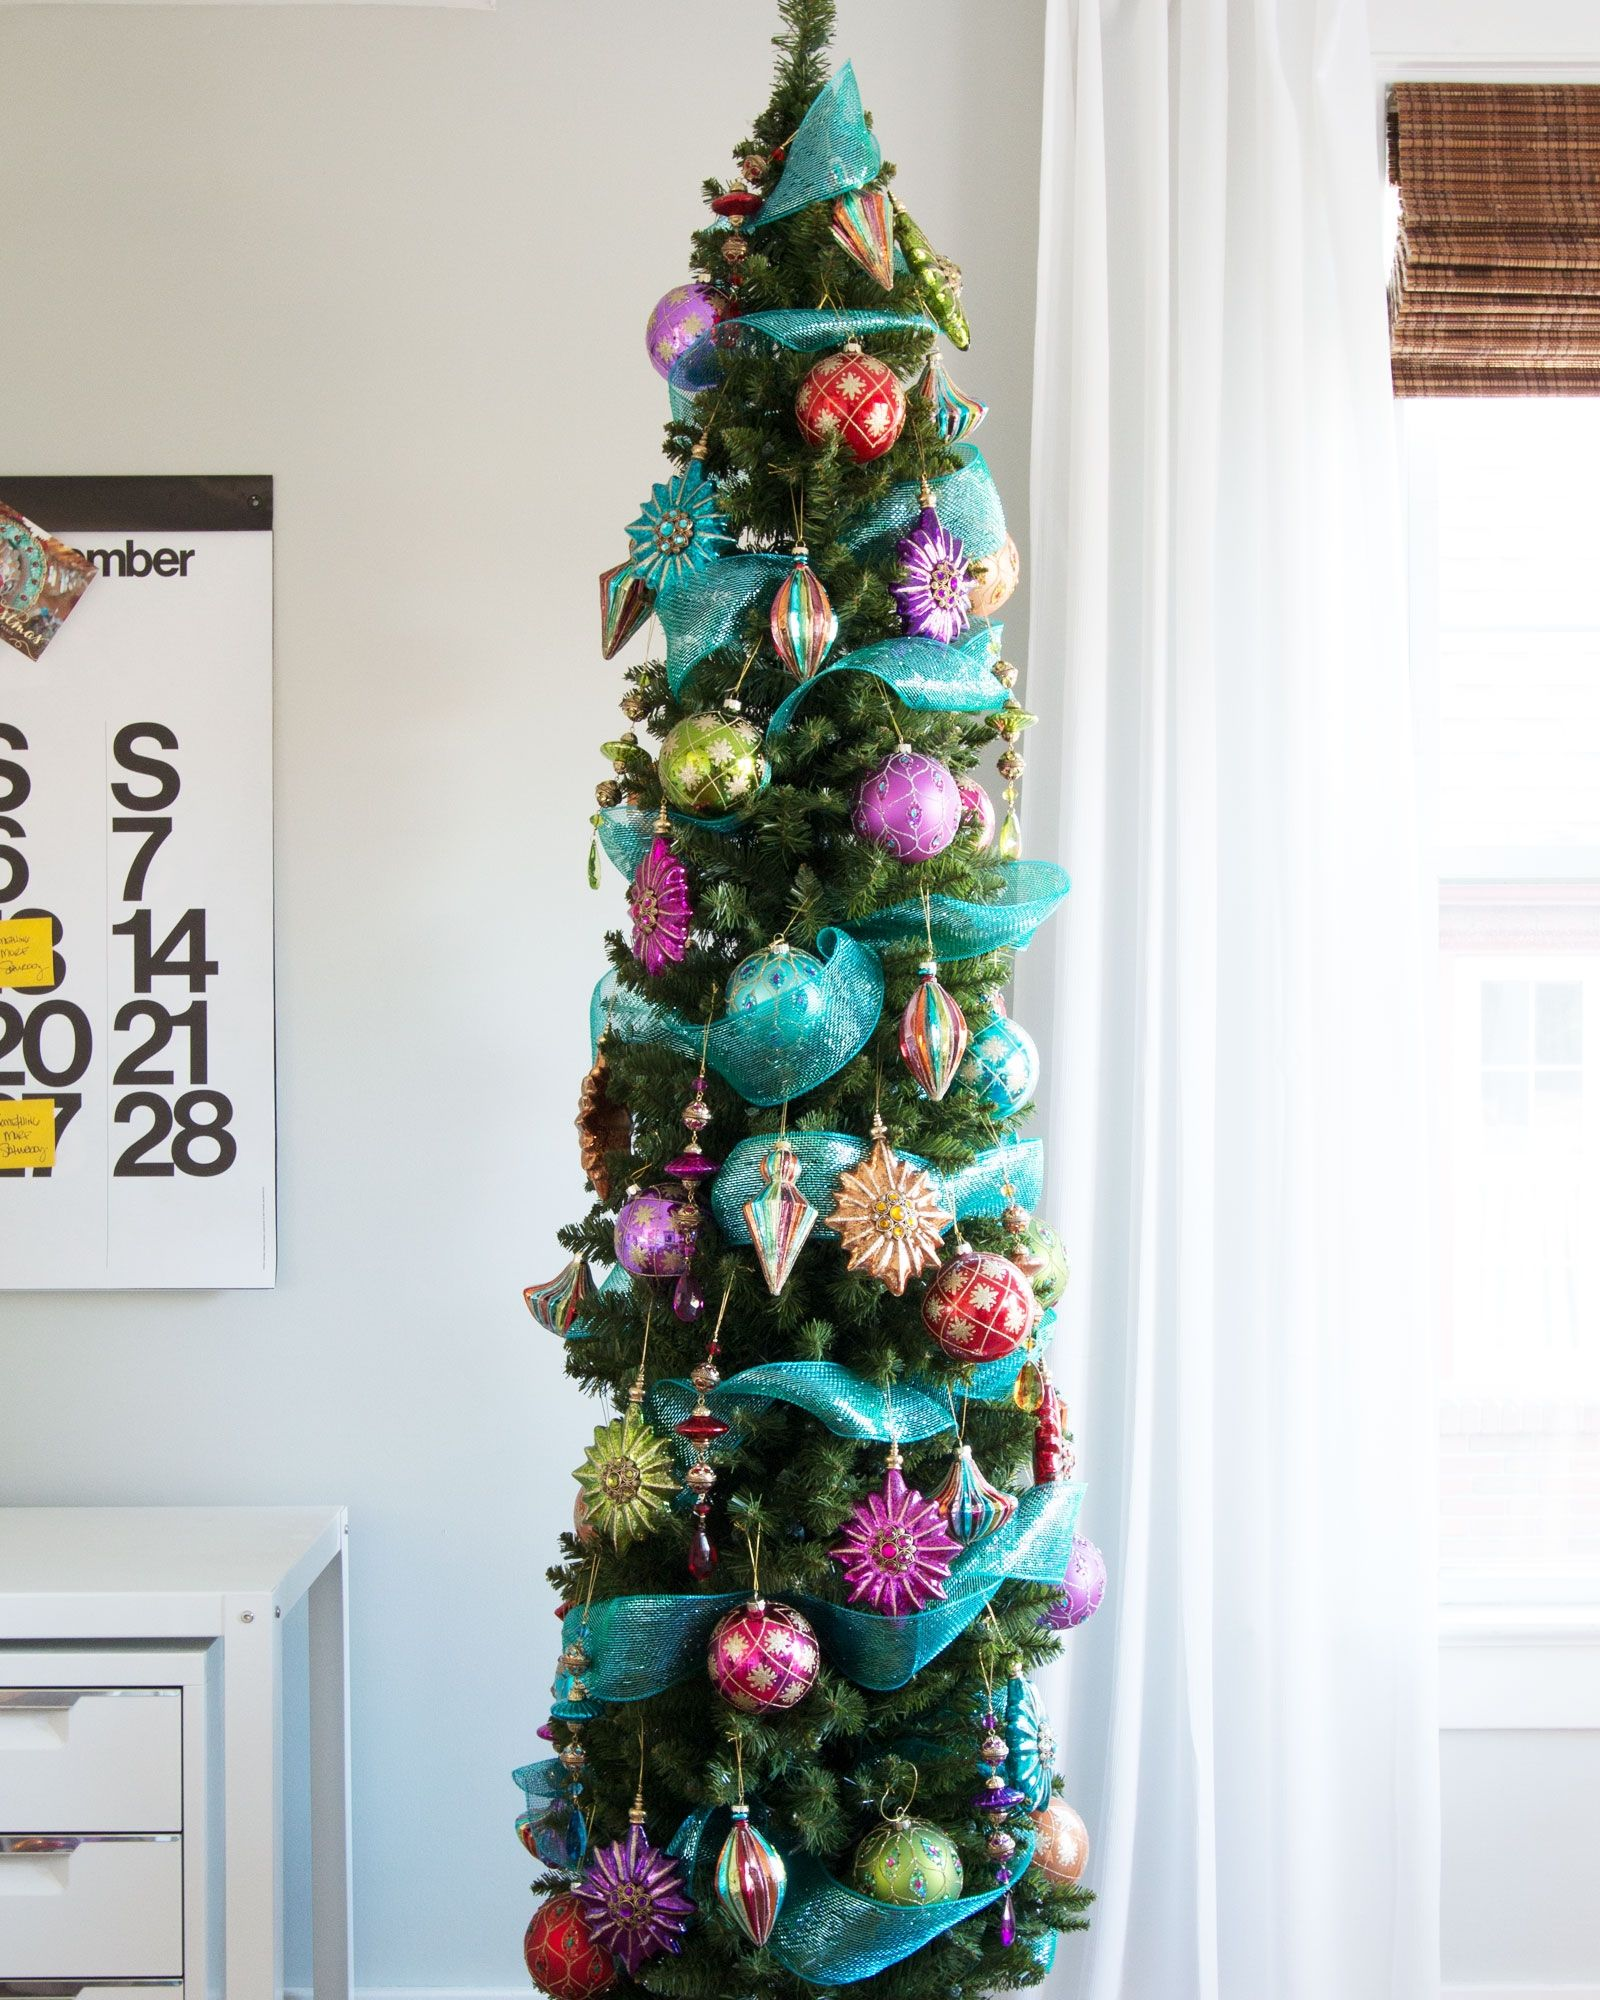 with lush warm green foliage and a sleek slender profile this no 2 pencil christmas tree makes even the smallest spaces in your home look beautiful and